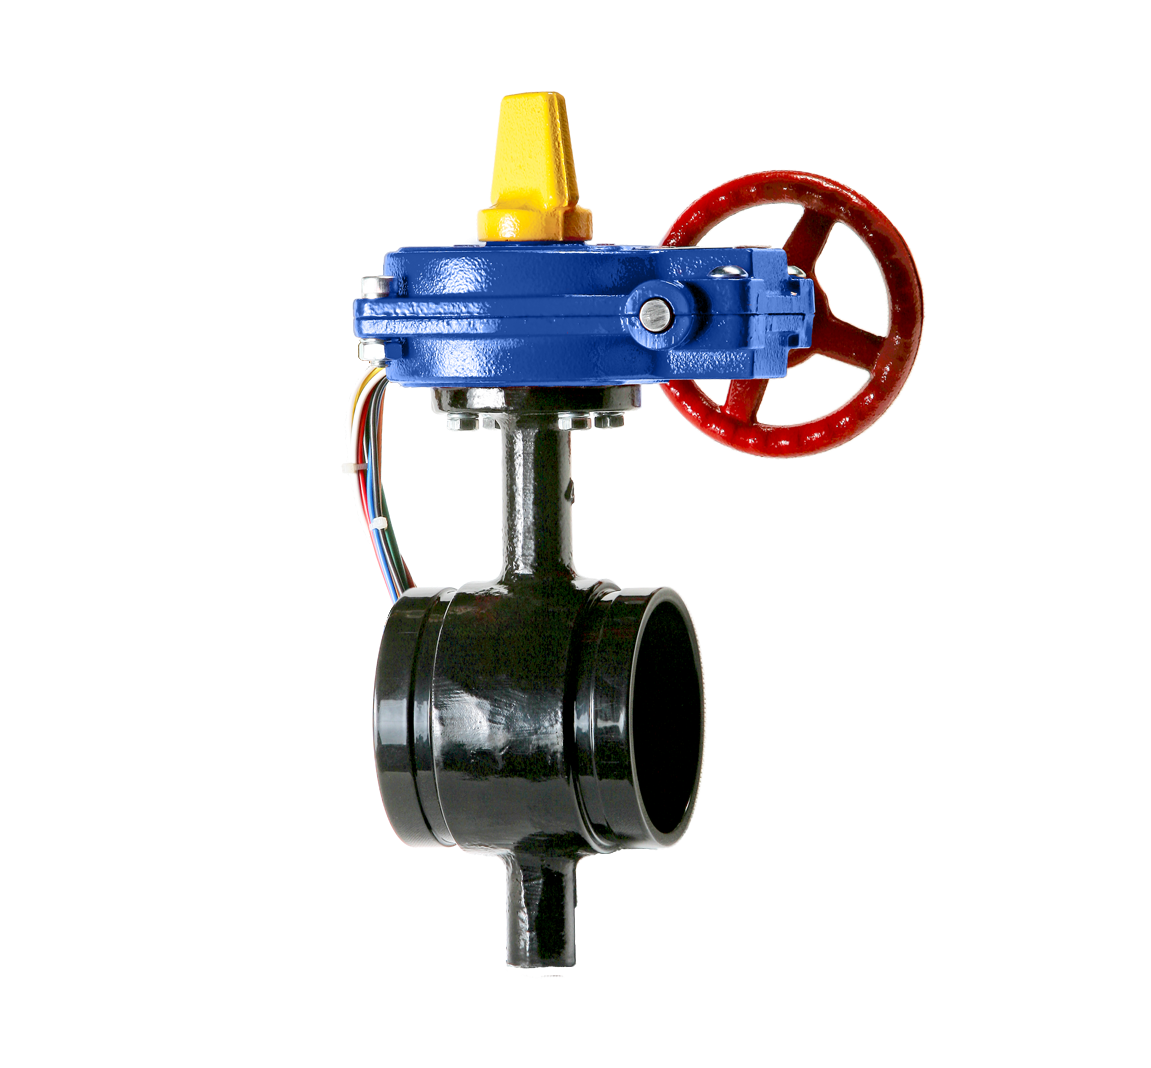 HPG butterfly valve aleum usa anaheim, ca usa  at webbmarketing.co